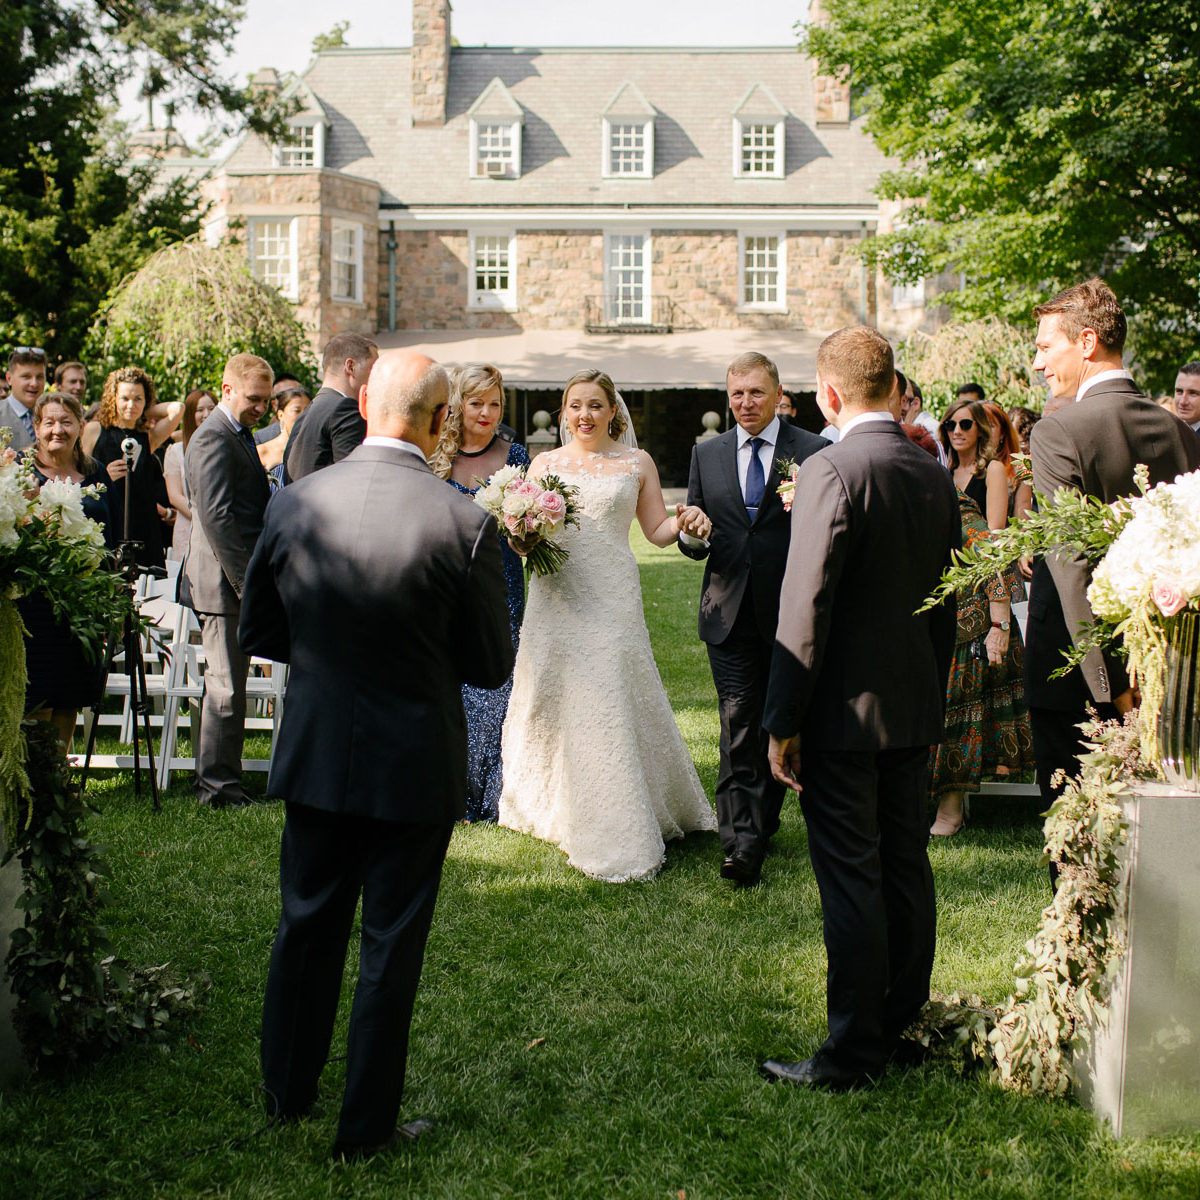 Bride is emotional while walking down aisle with parents towards groom at McClain House, Estates of Sunnybrook.